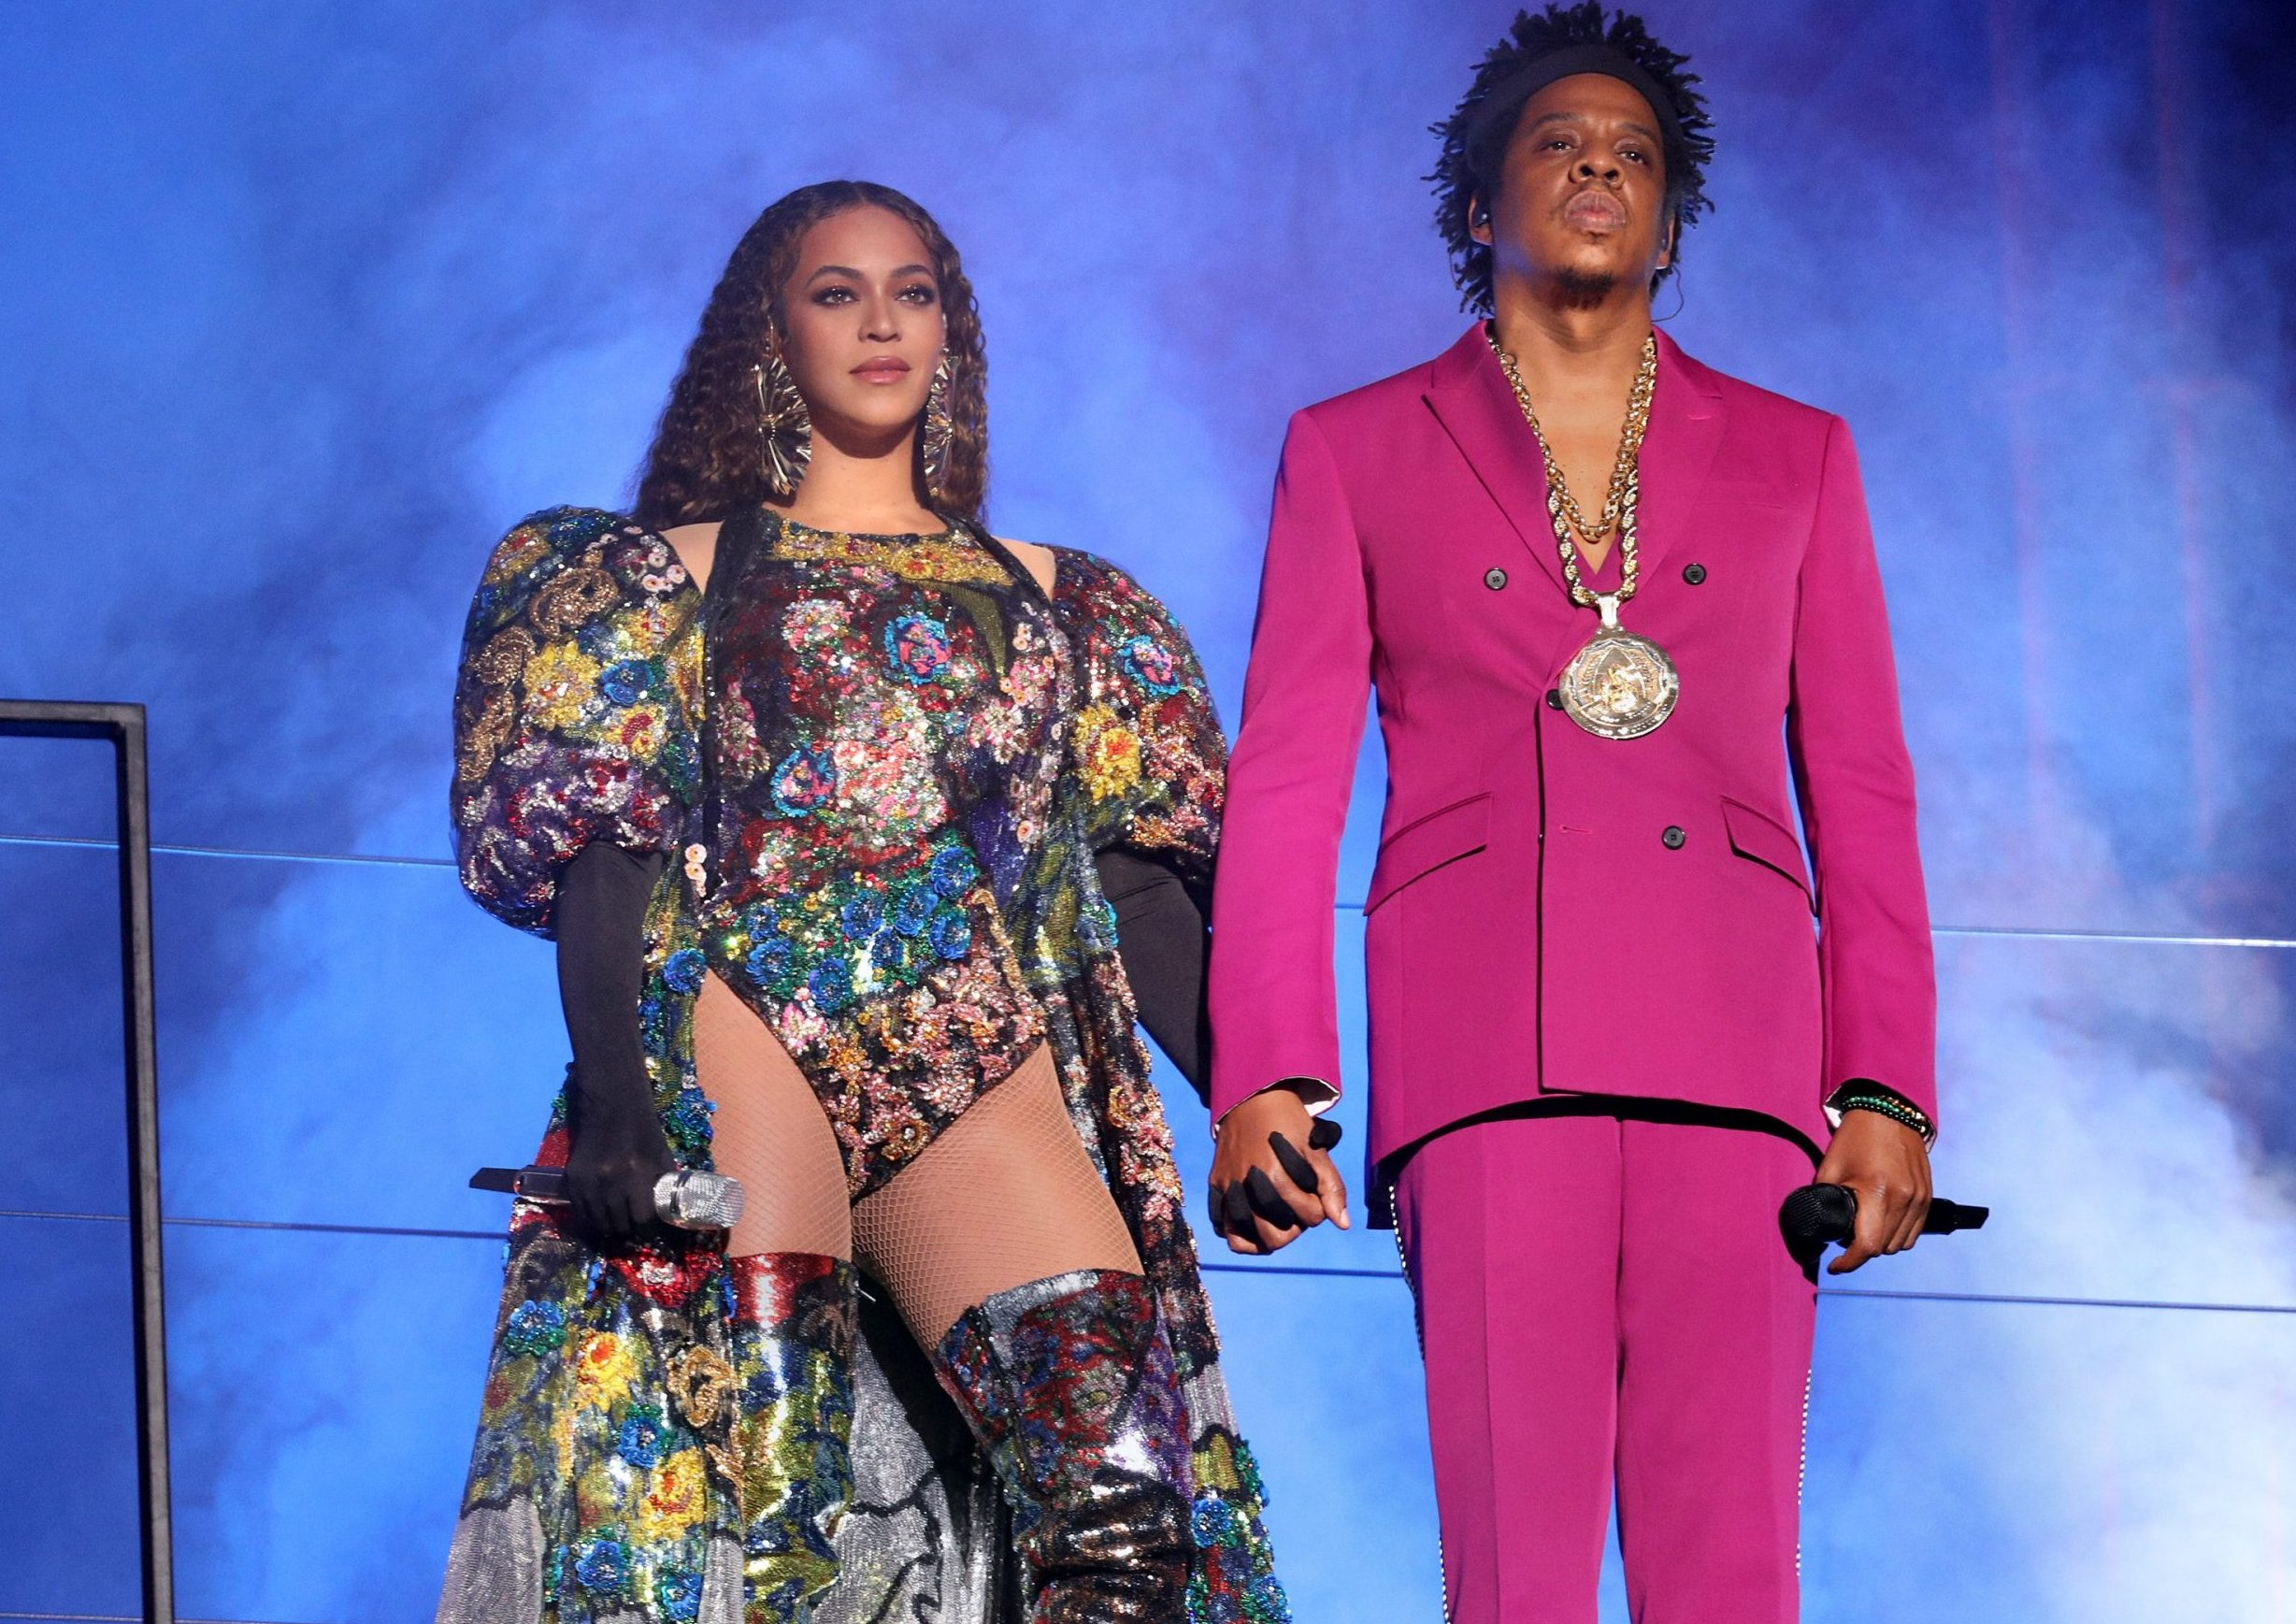 Beyoncé hails Global Citizen concert an 'extraordinary' success for helping to raise $7.1billion for poverty relief